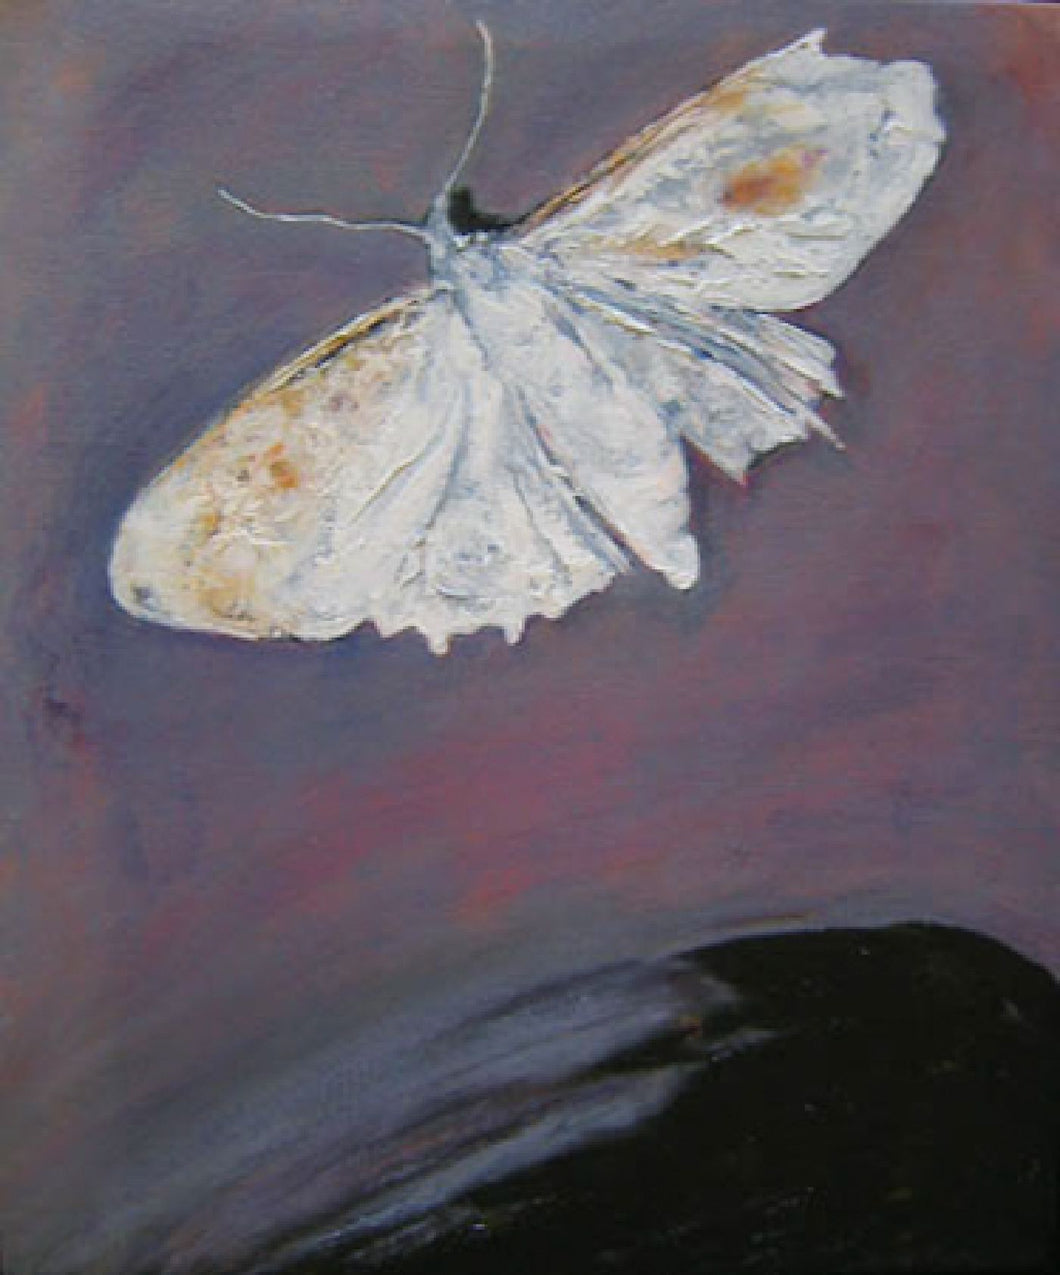 Bebe E De La Ni Wai - Moth on the Water